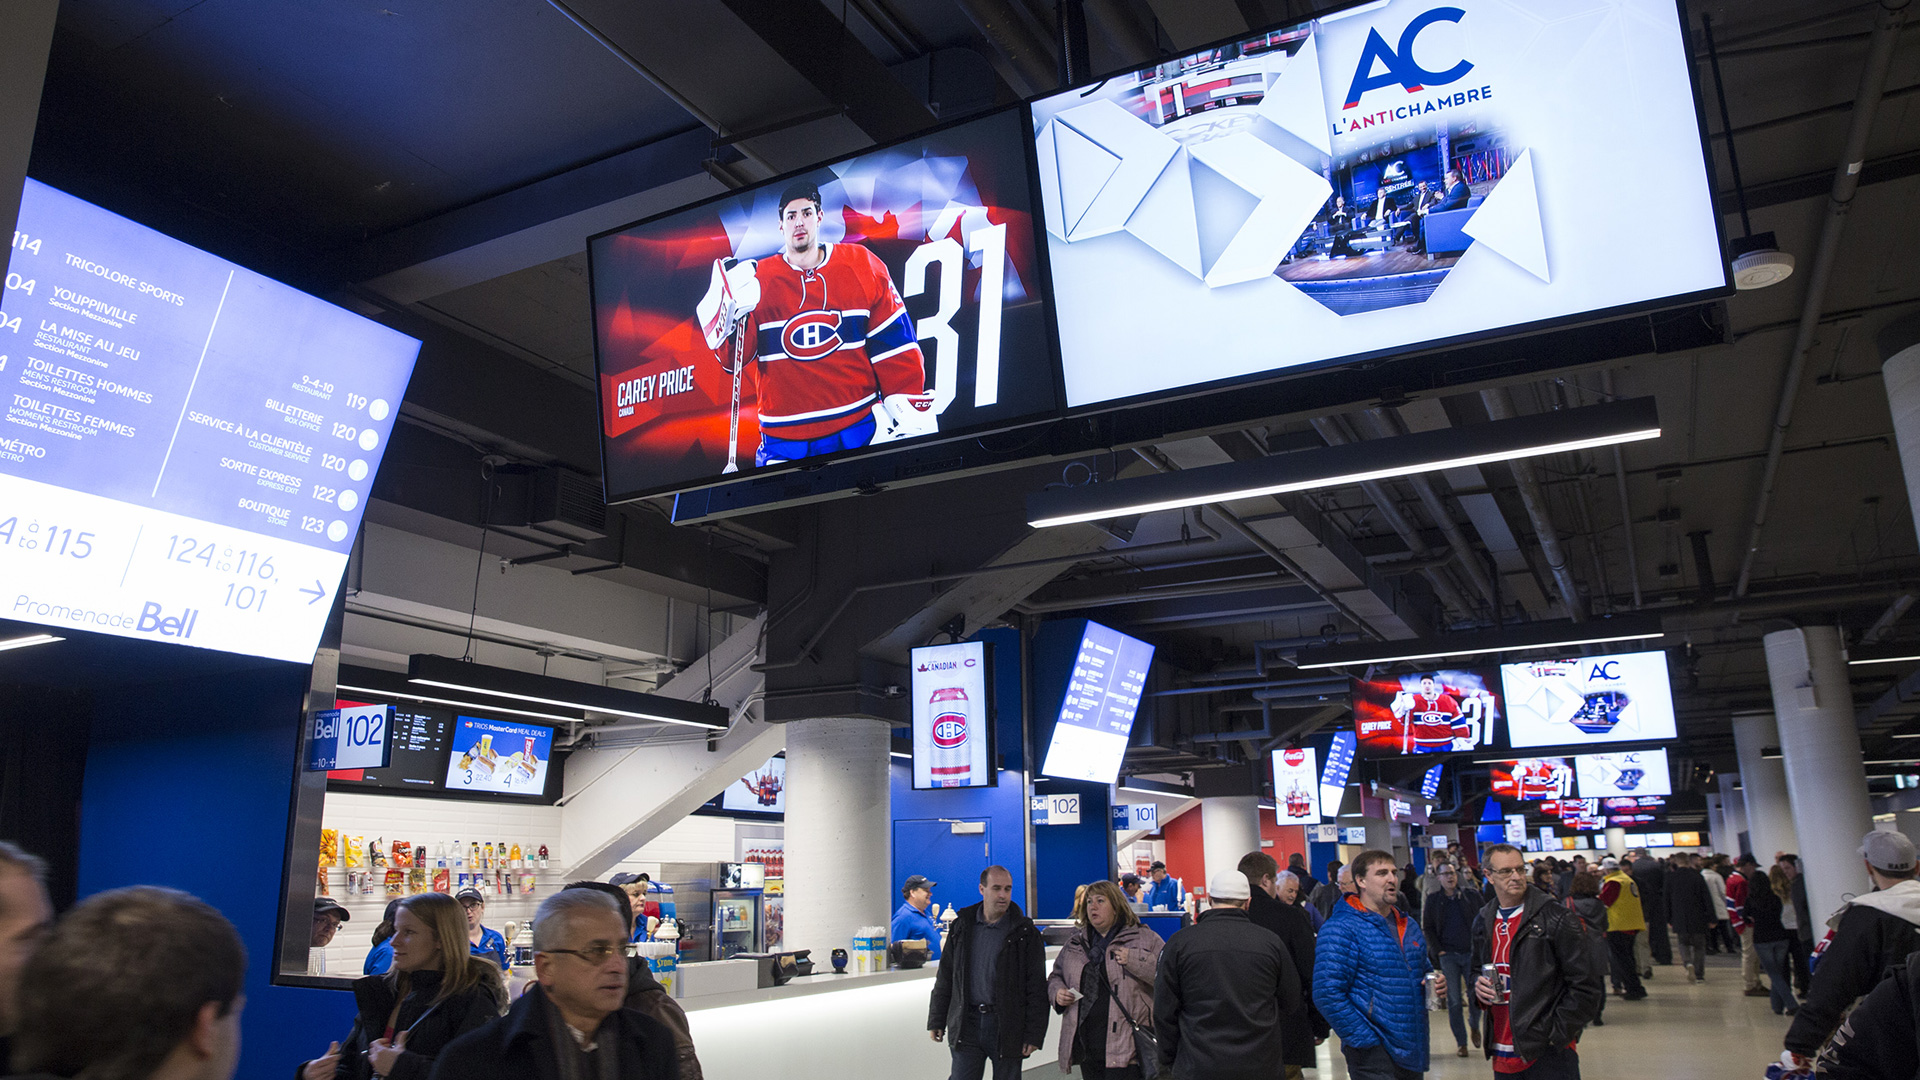 Montreal Canadiens Player Profiles Display